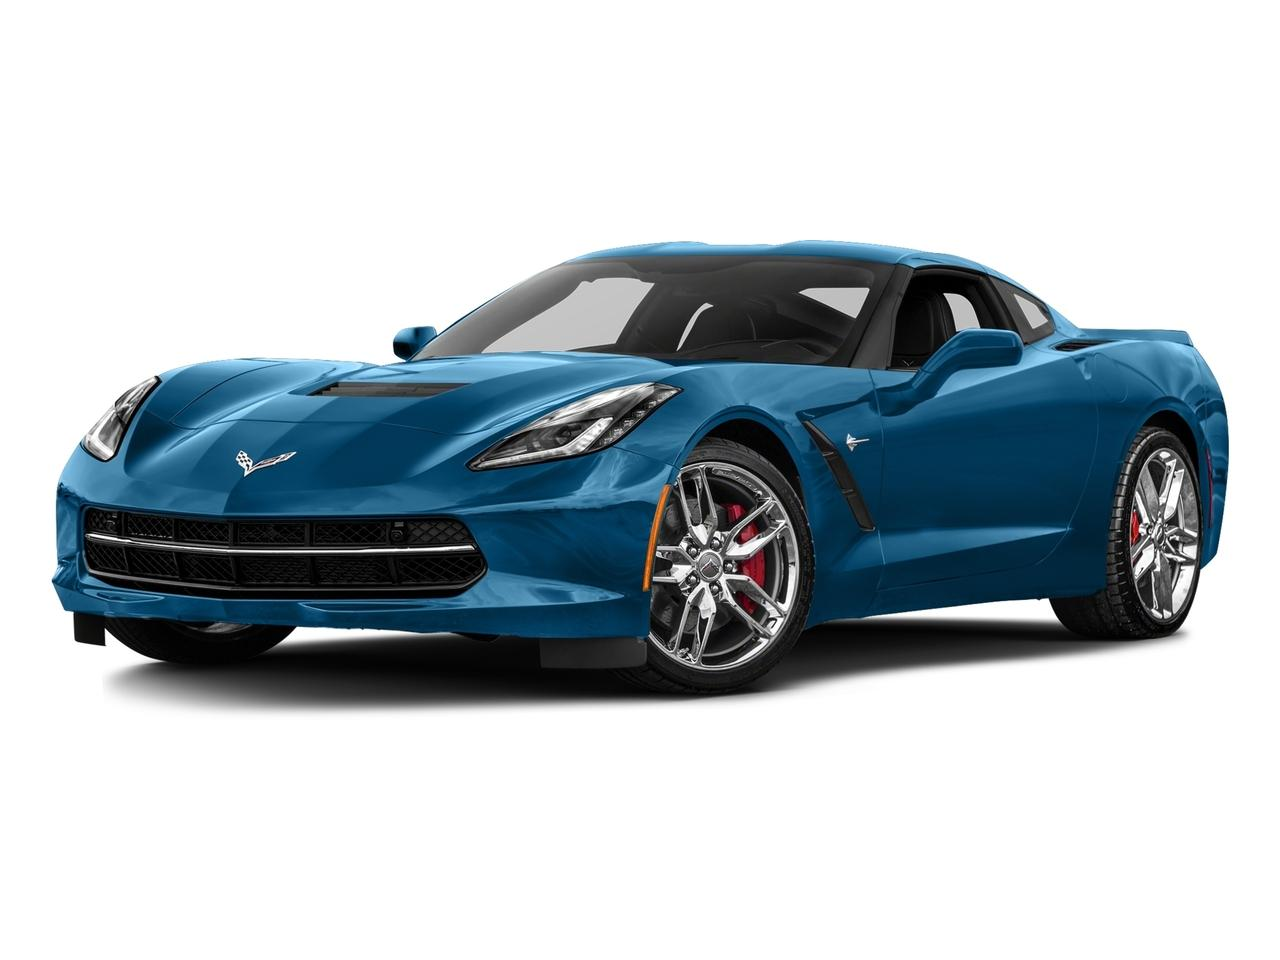 2016 Chevrolet Corvette Vehicle Photo in Medina, OH 44256